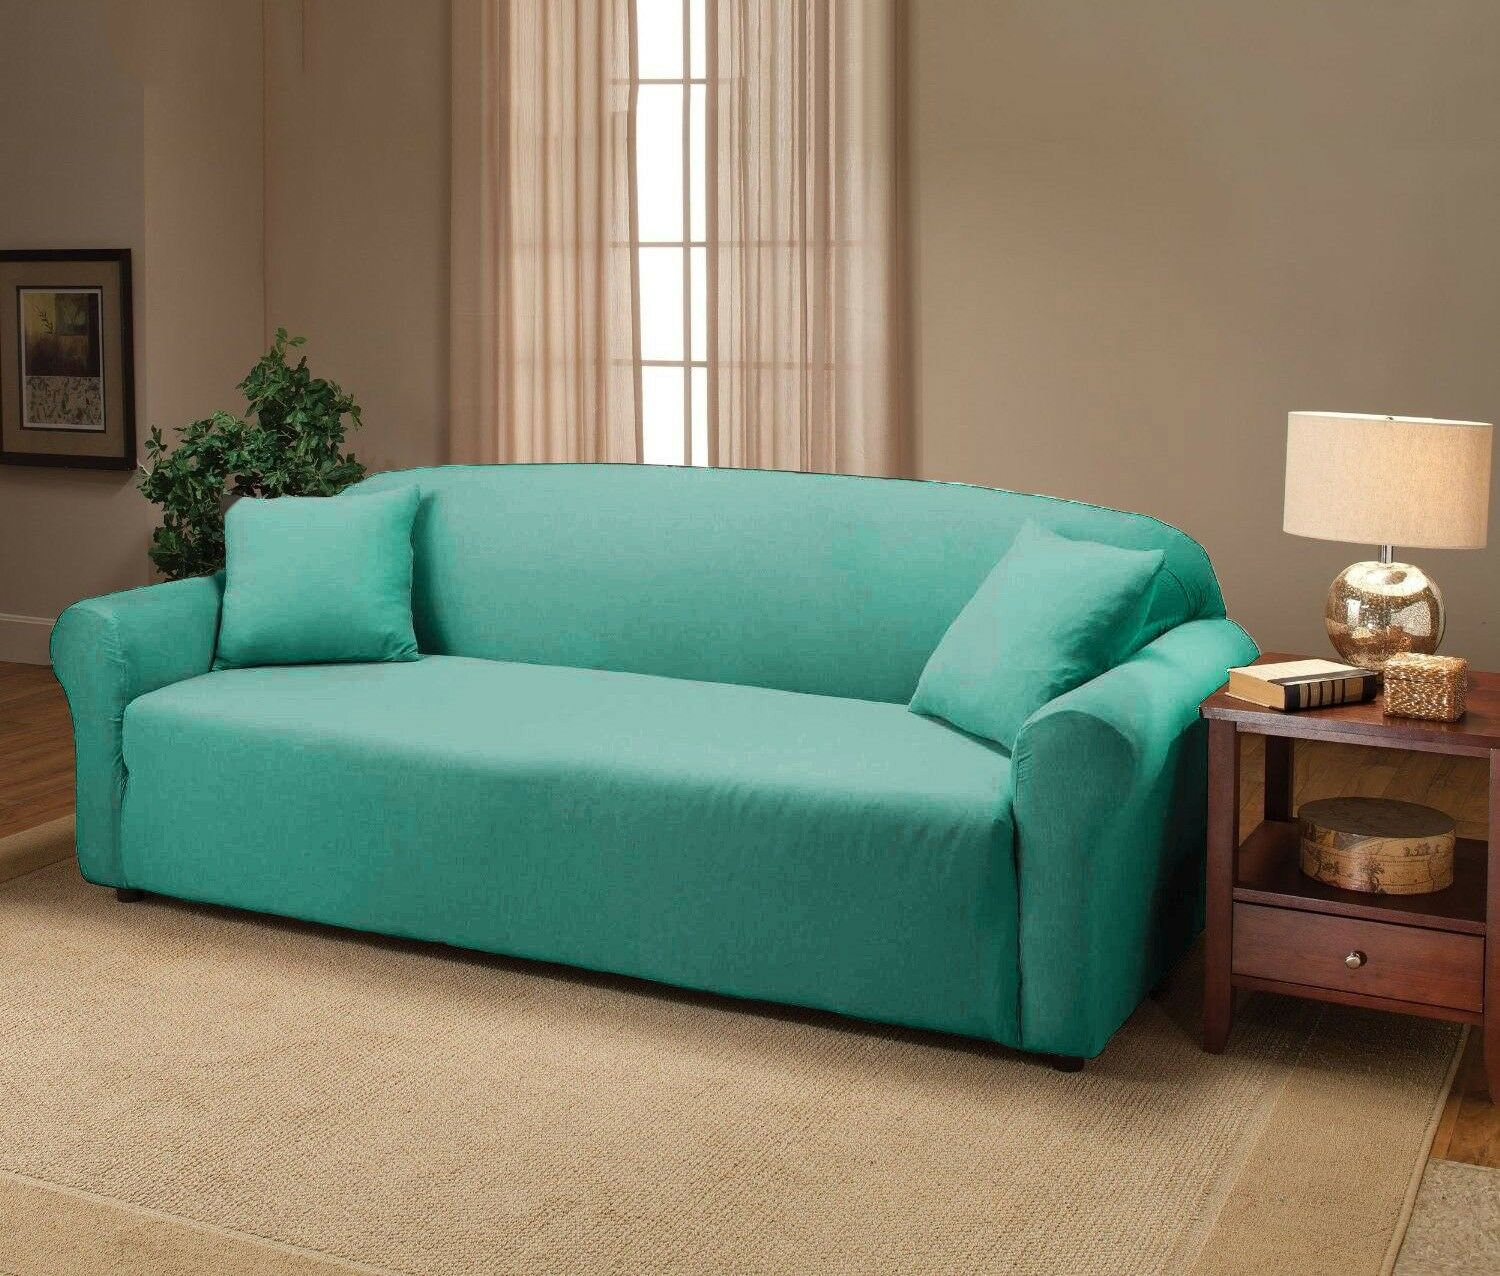 Slipcover Sofa Set: AQUA JERSEY SOFA STRETCH SLIPCOVER, COUCH COVER, CHAIR